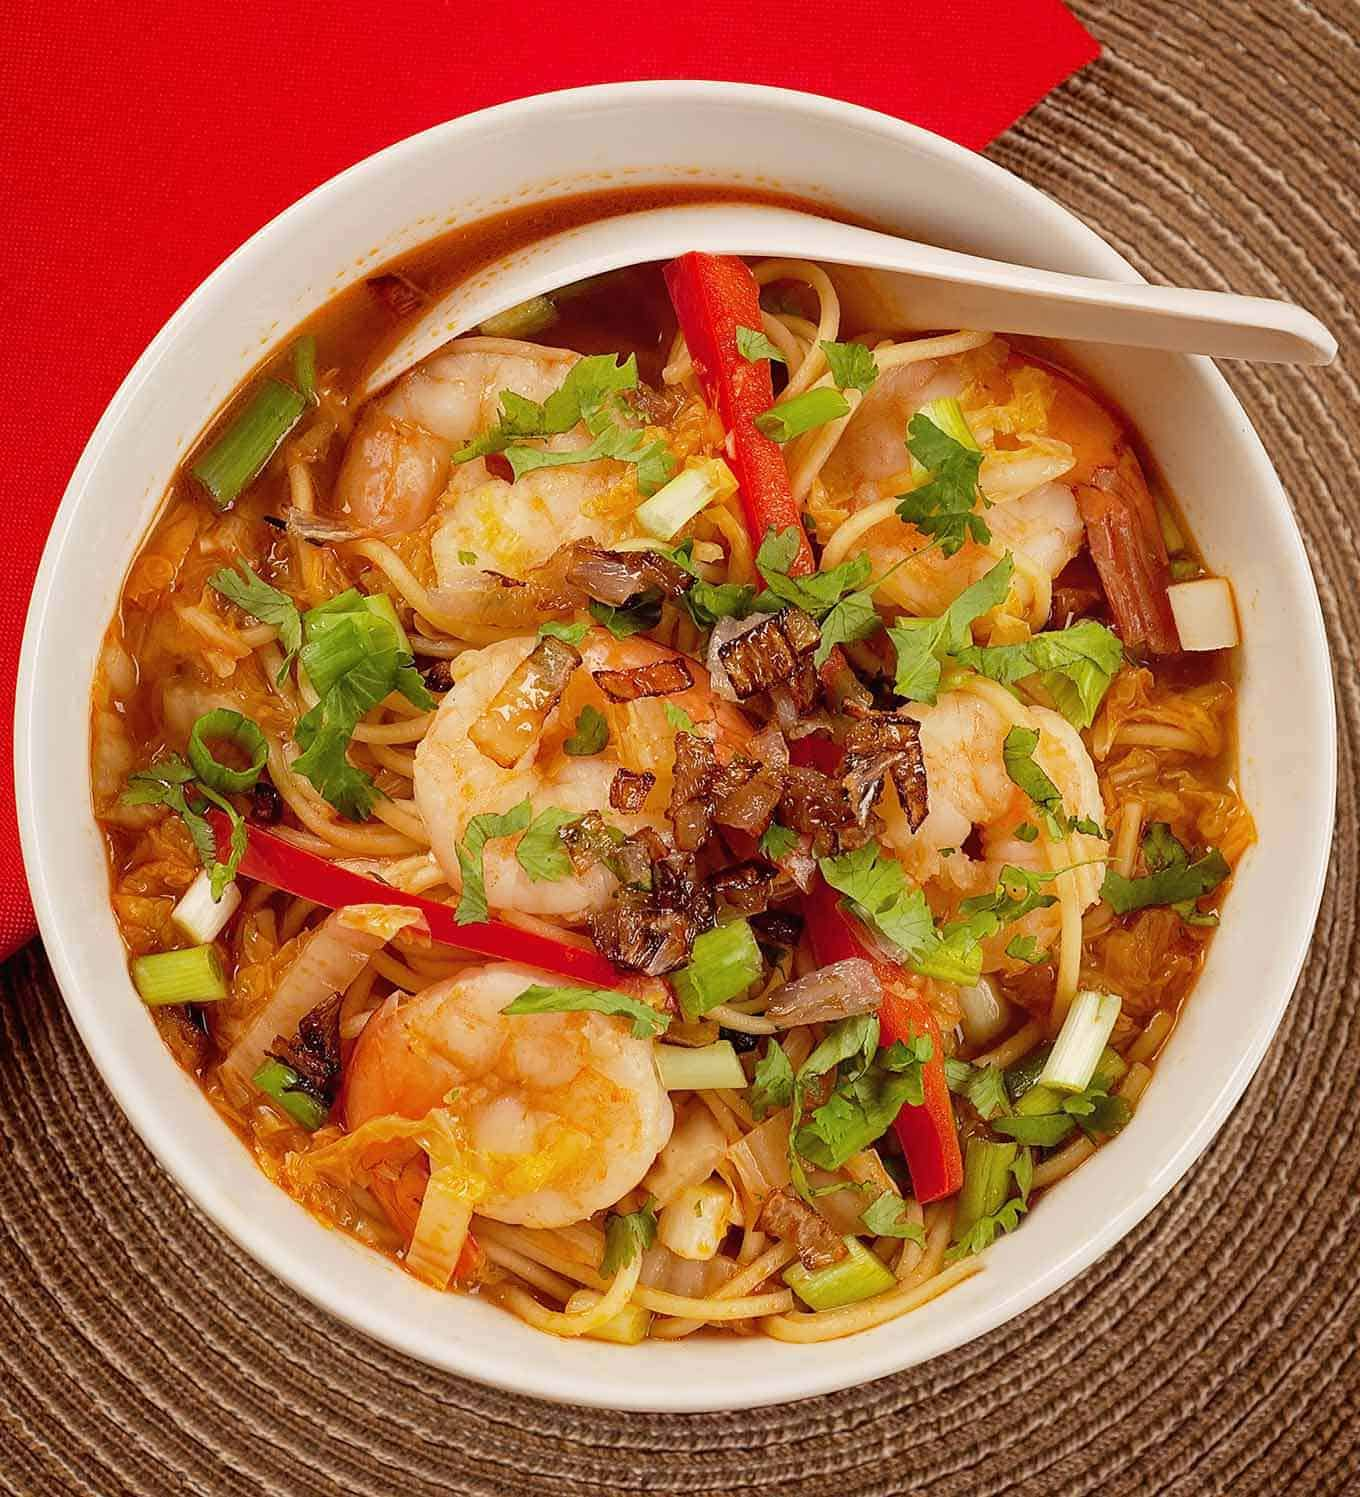 Bowl filled with ramen noodles, shrimp, Napa cabbage, red bell pepper, and garnished with scallions and cilantro.